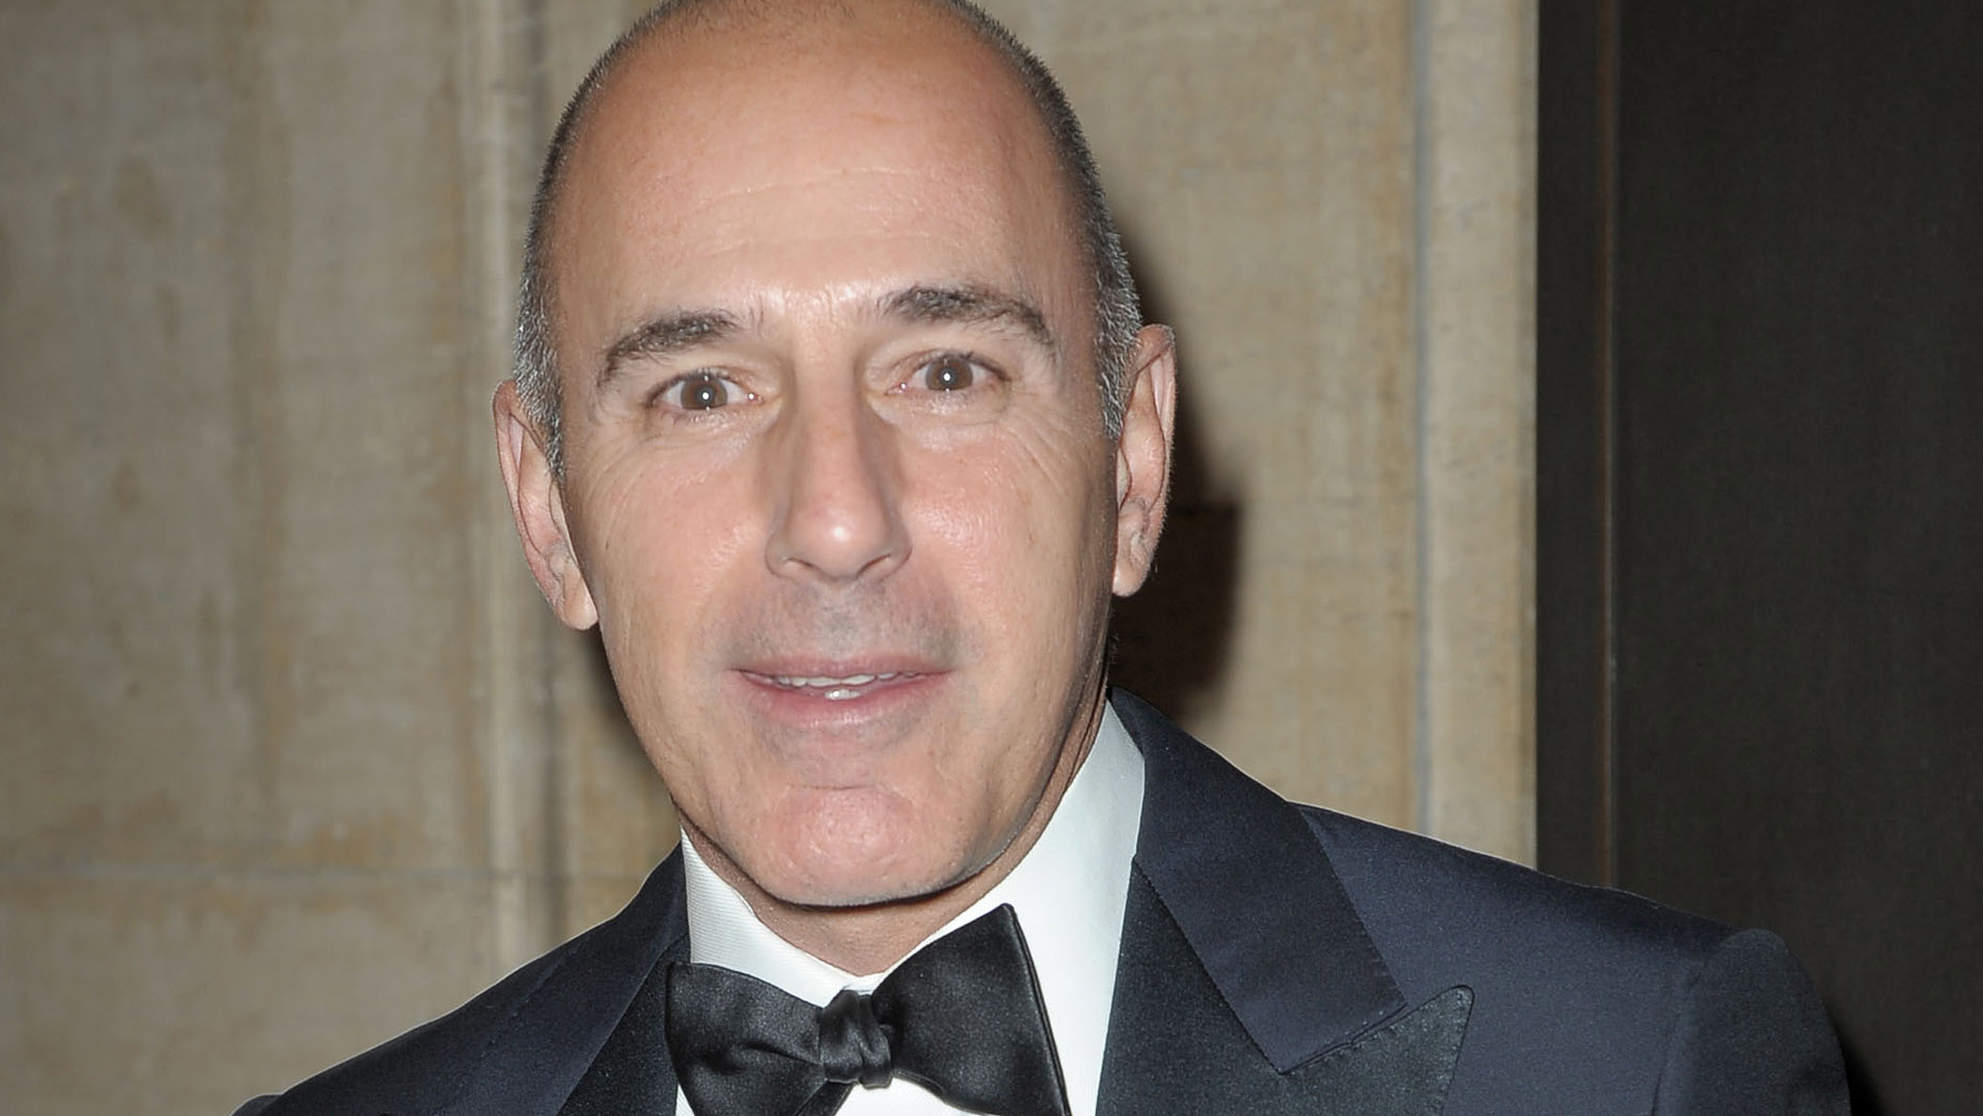 Ex-Today Staffer Says Matt Lauer Cheated on His Wife with Her: He 'Took Advantage of His Power'